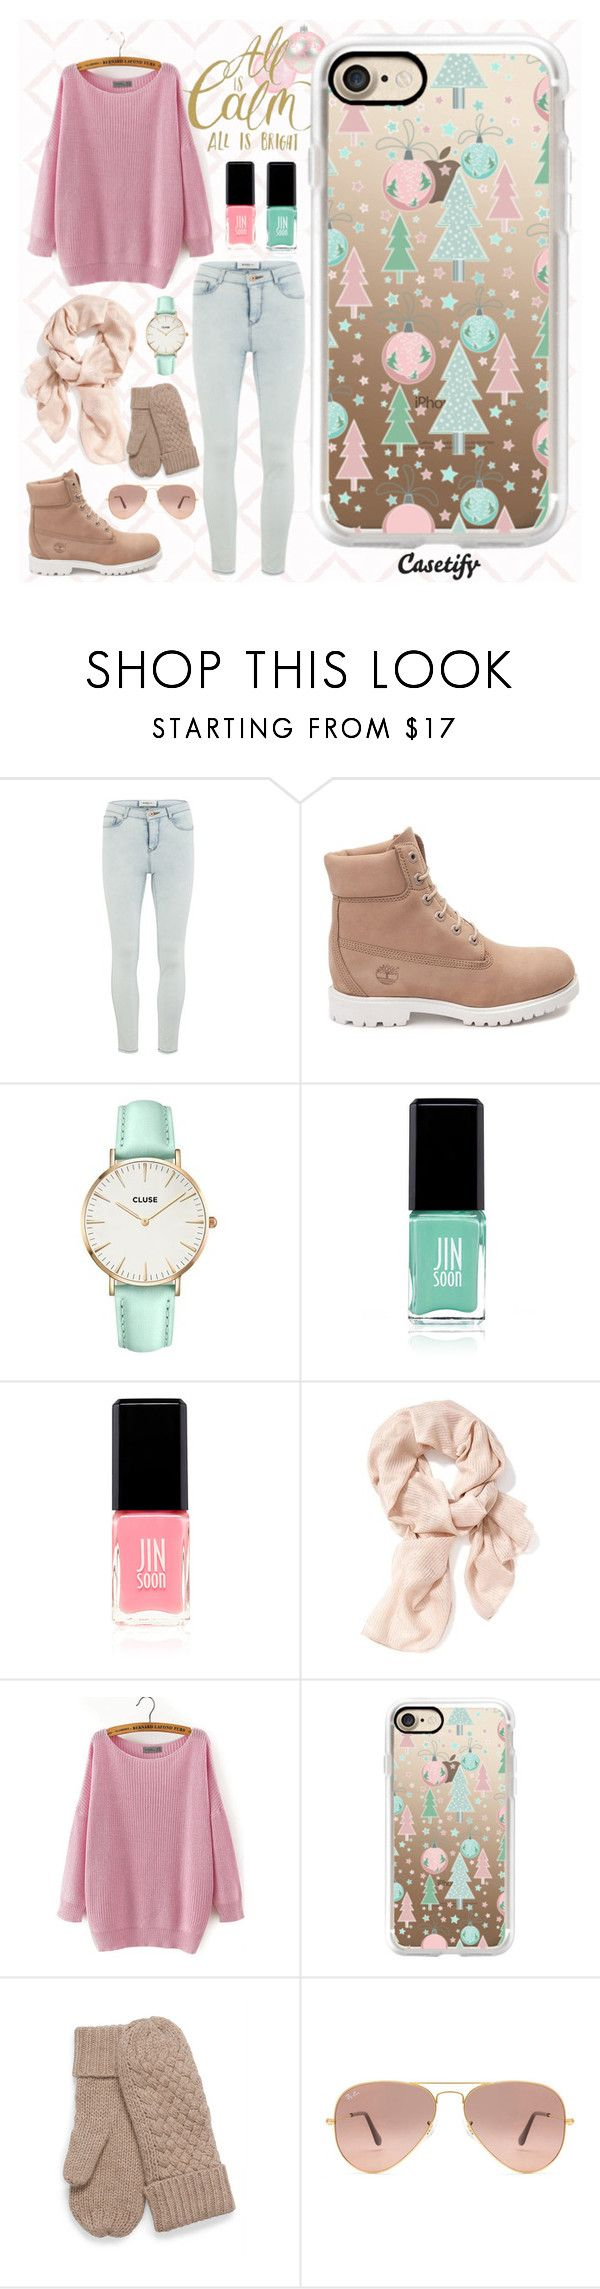 """""""Under the Christmas Tree 🎄"""" by casetify ❤ liked on Polyvore featuring Vero Moda, Timberland, CLUSE, Jin Soon, JINsoon, Old Navy, Casetify and Ray-Ban"""